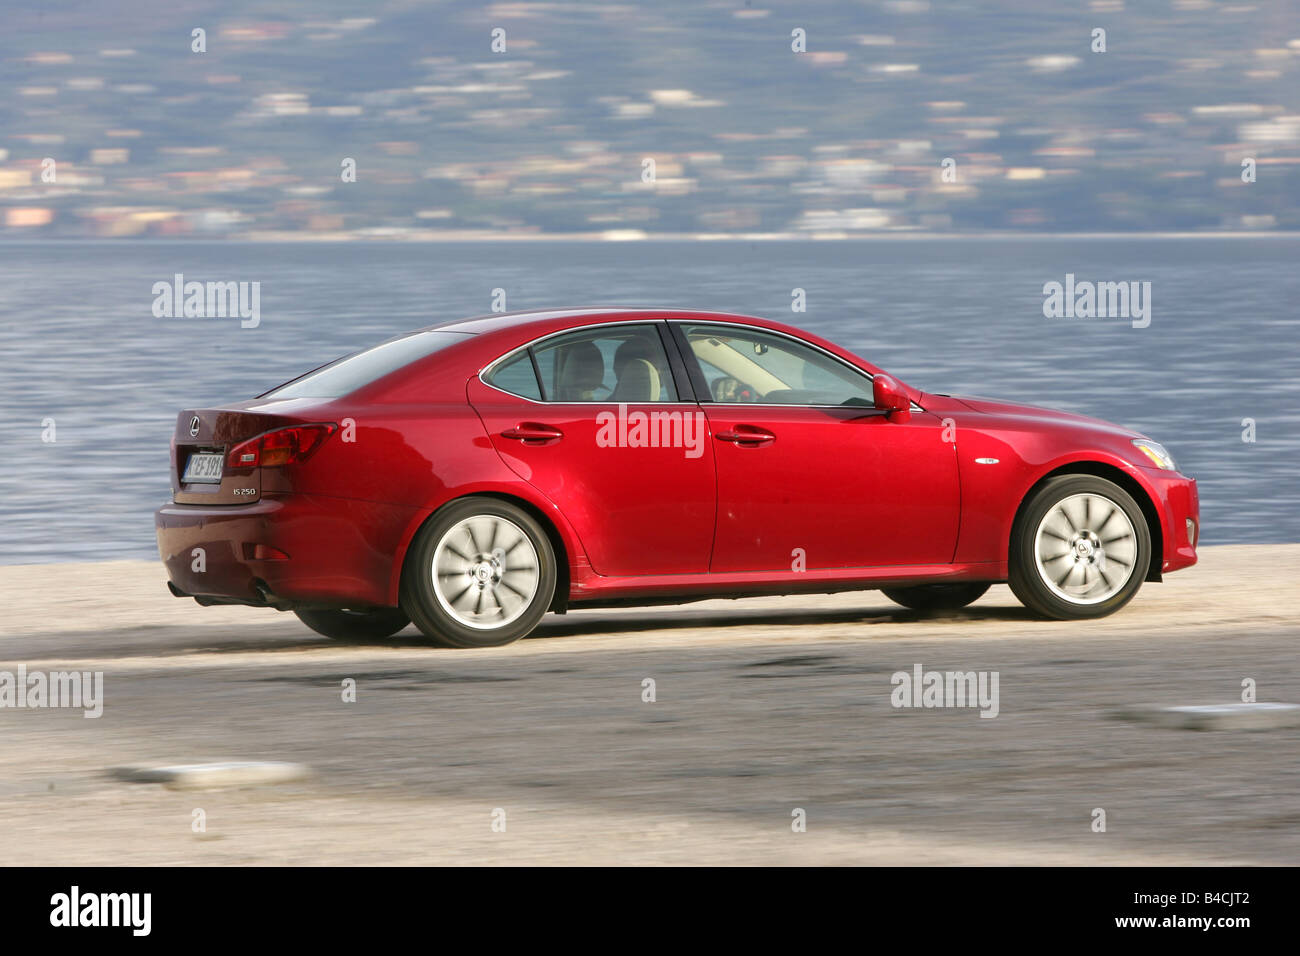 Lexus IS 250, model year 2005-, red, driving, side view, lake - Stock Image